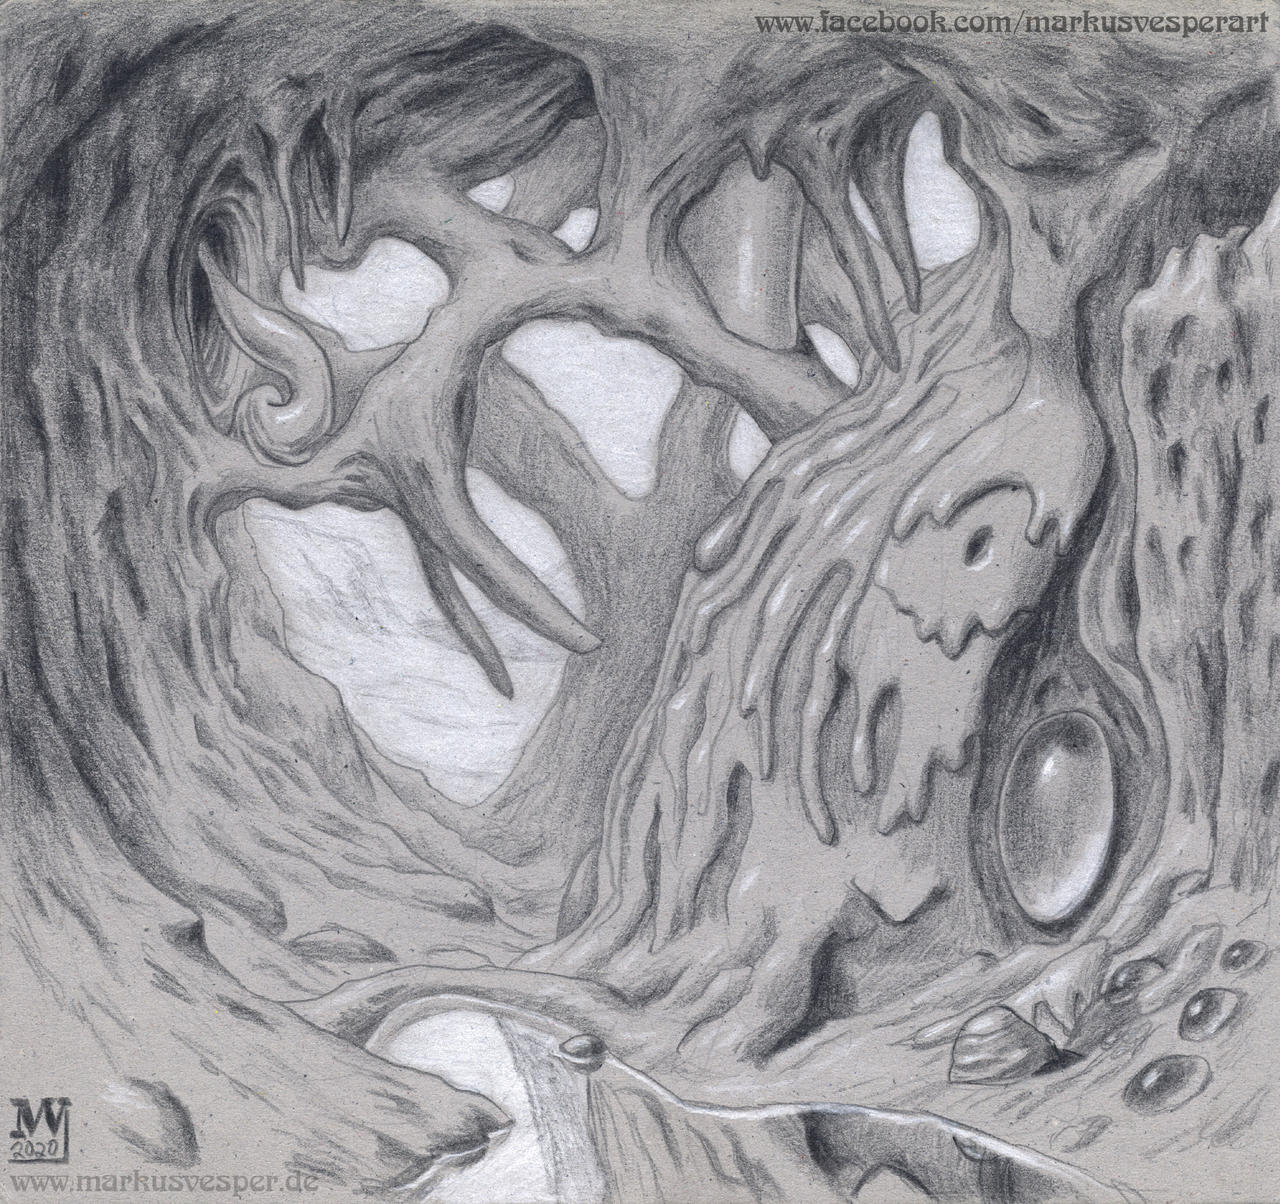 Surreal scenery drawing